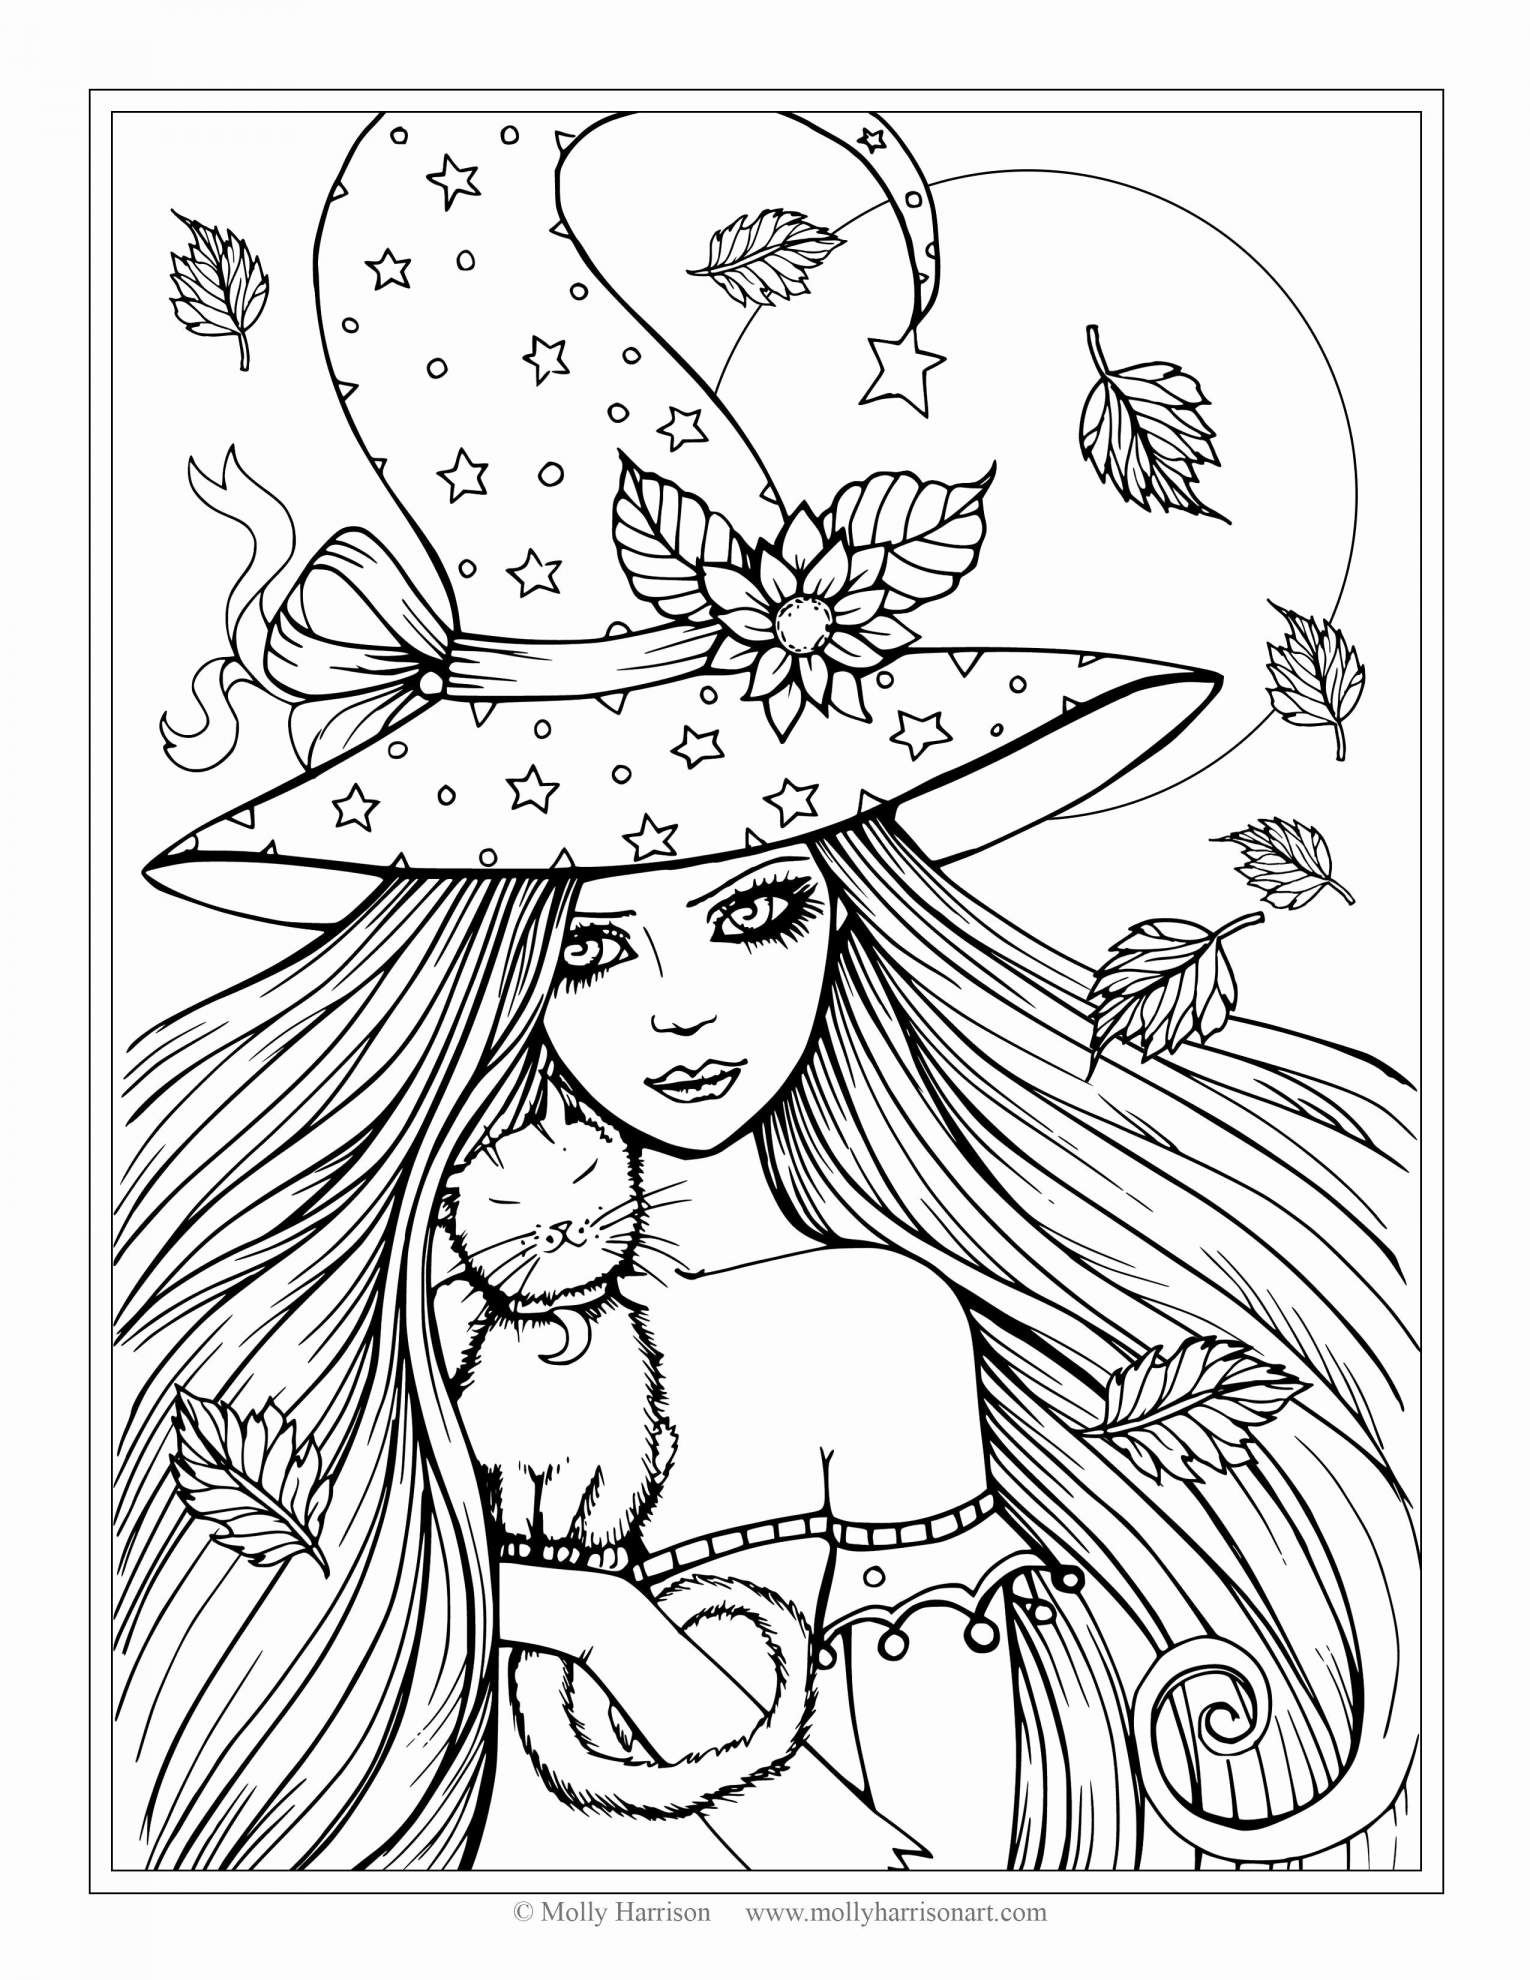 Merry Christmas Cards Coloring Pages With Card Printable